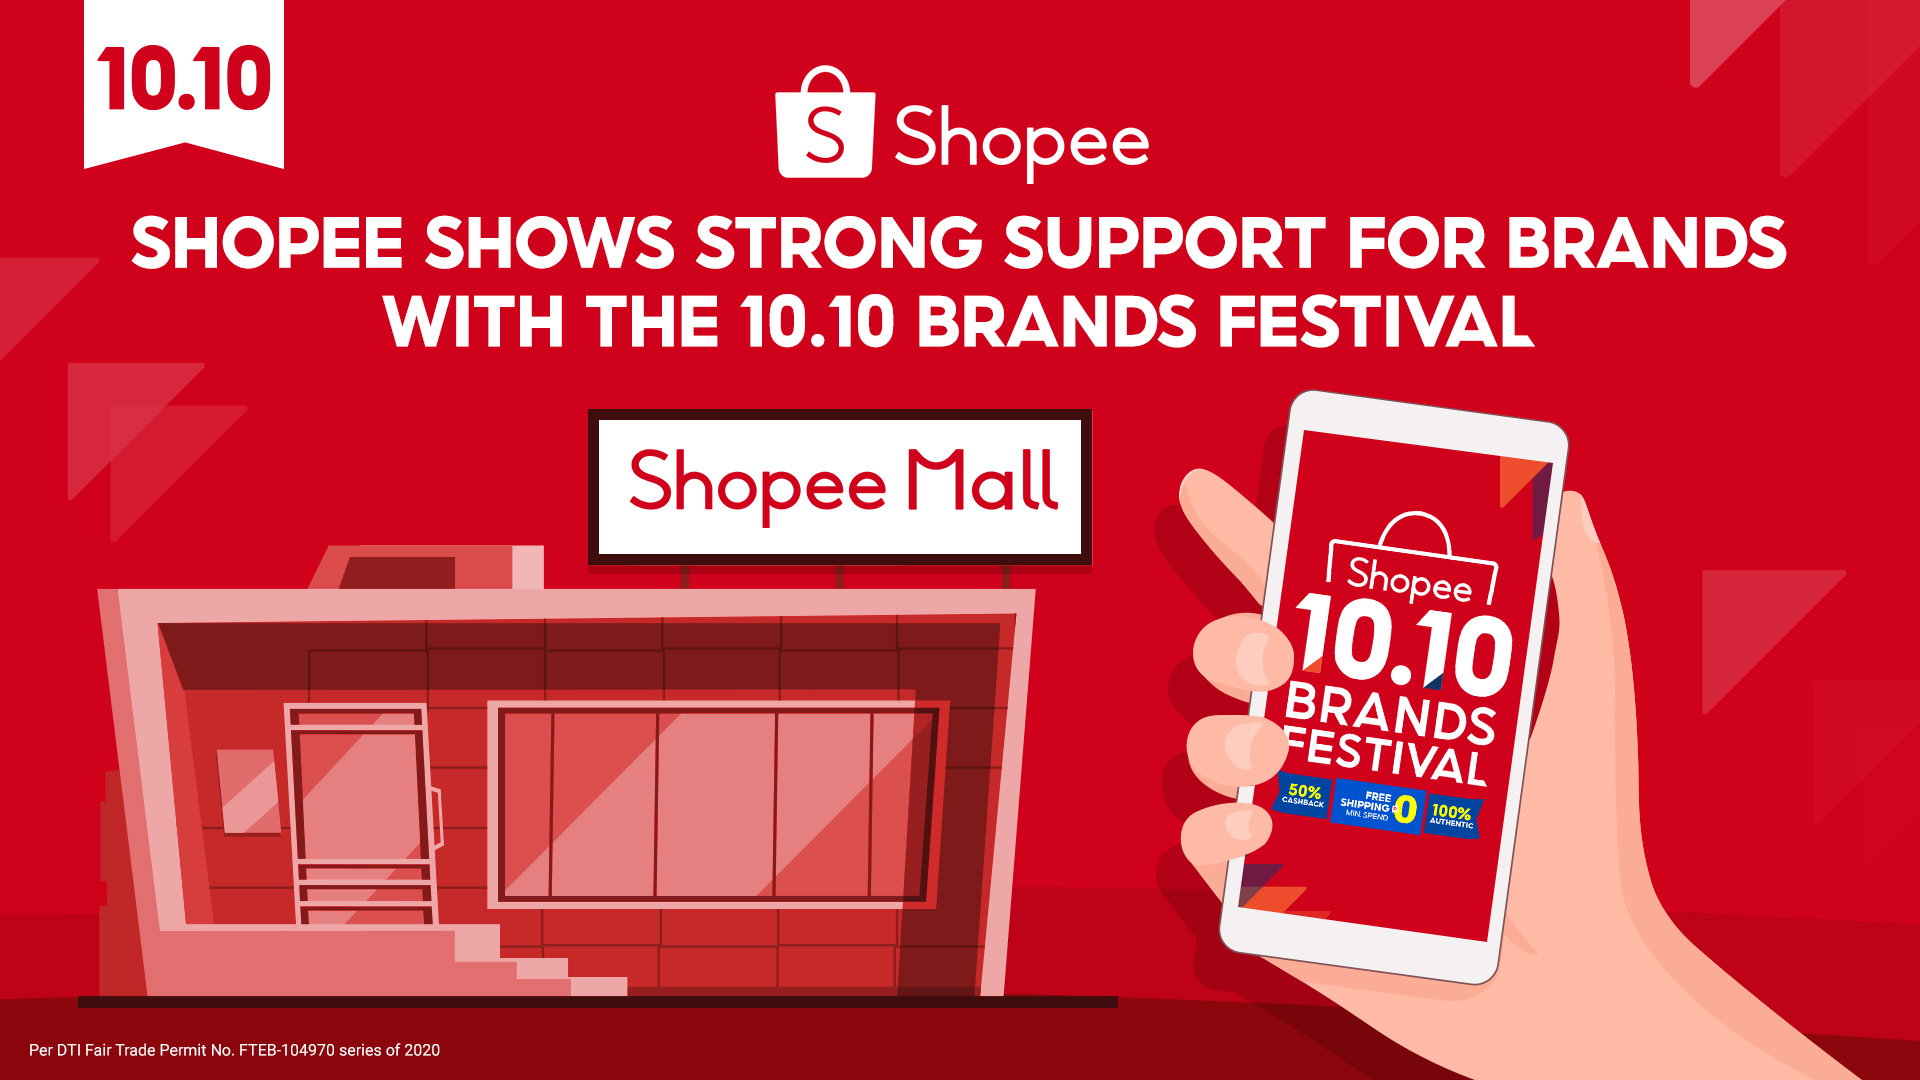 Shopee remains the most-trusted e-Commerce platform, strengthening its support for brands to reach millions of online customers through 10.10 Brands Festival